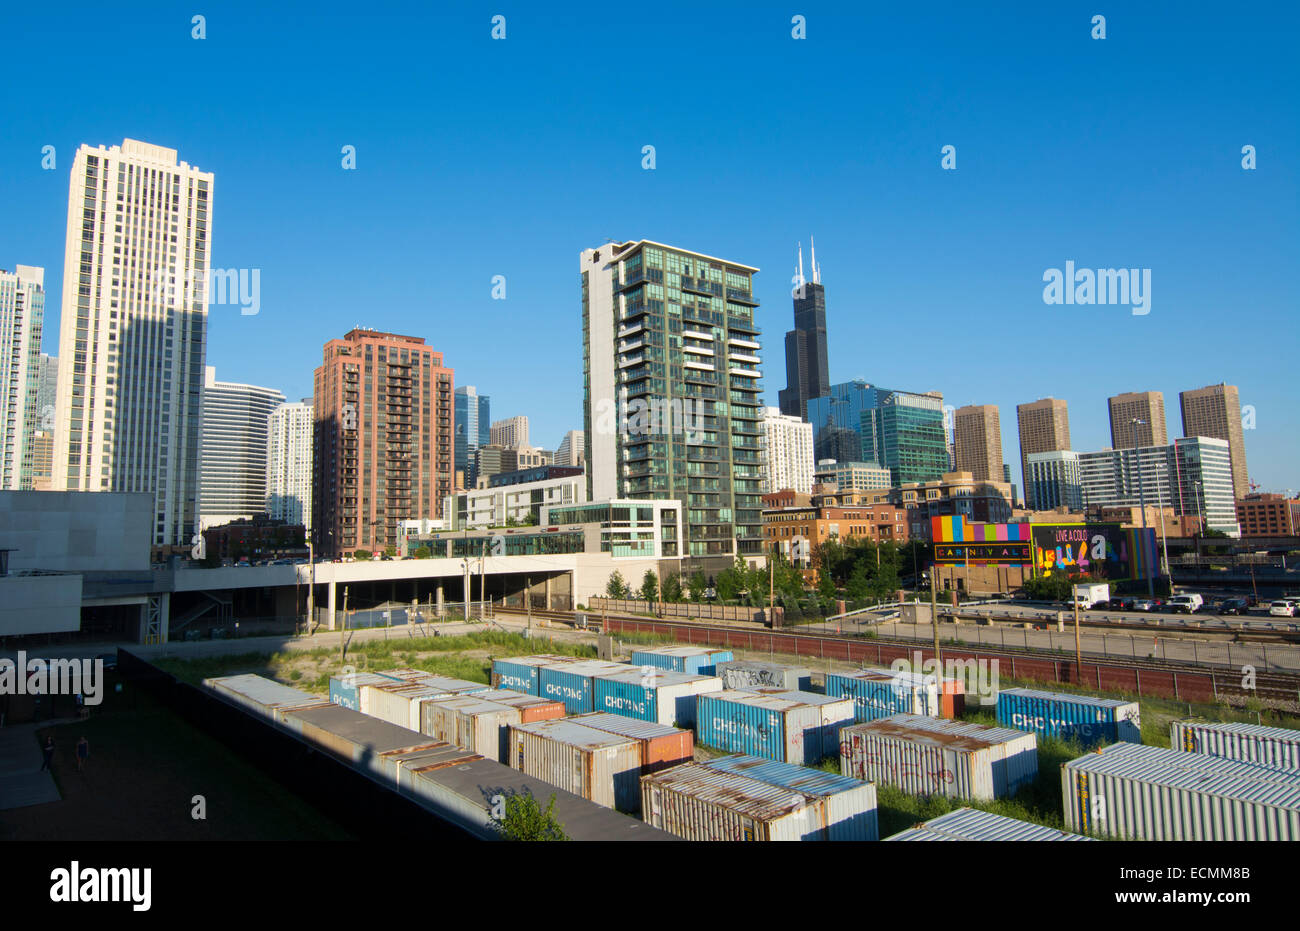 Chicago Illinois skyline with Sears Tower or Willis Tower in the back with skyscrapers - Stock Image